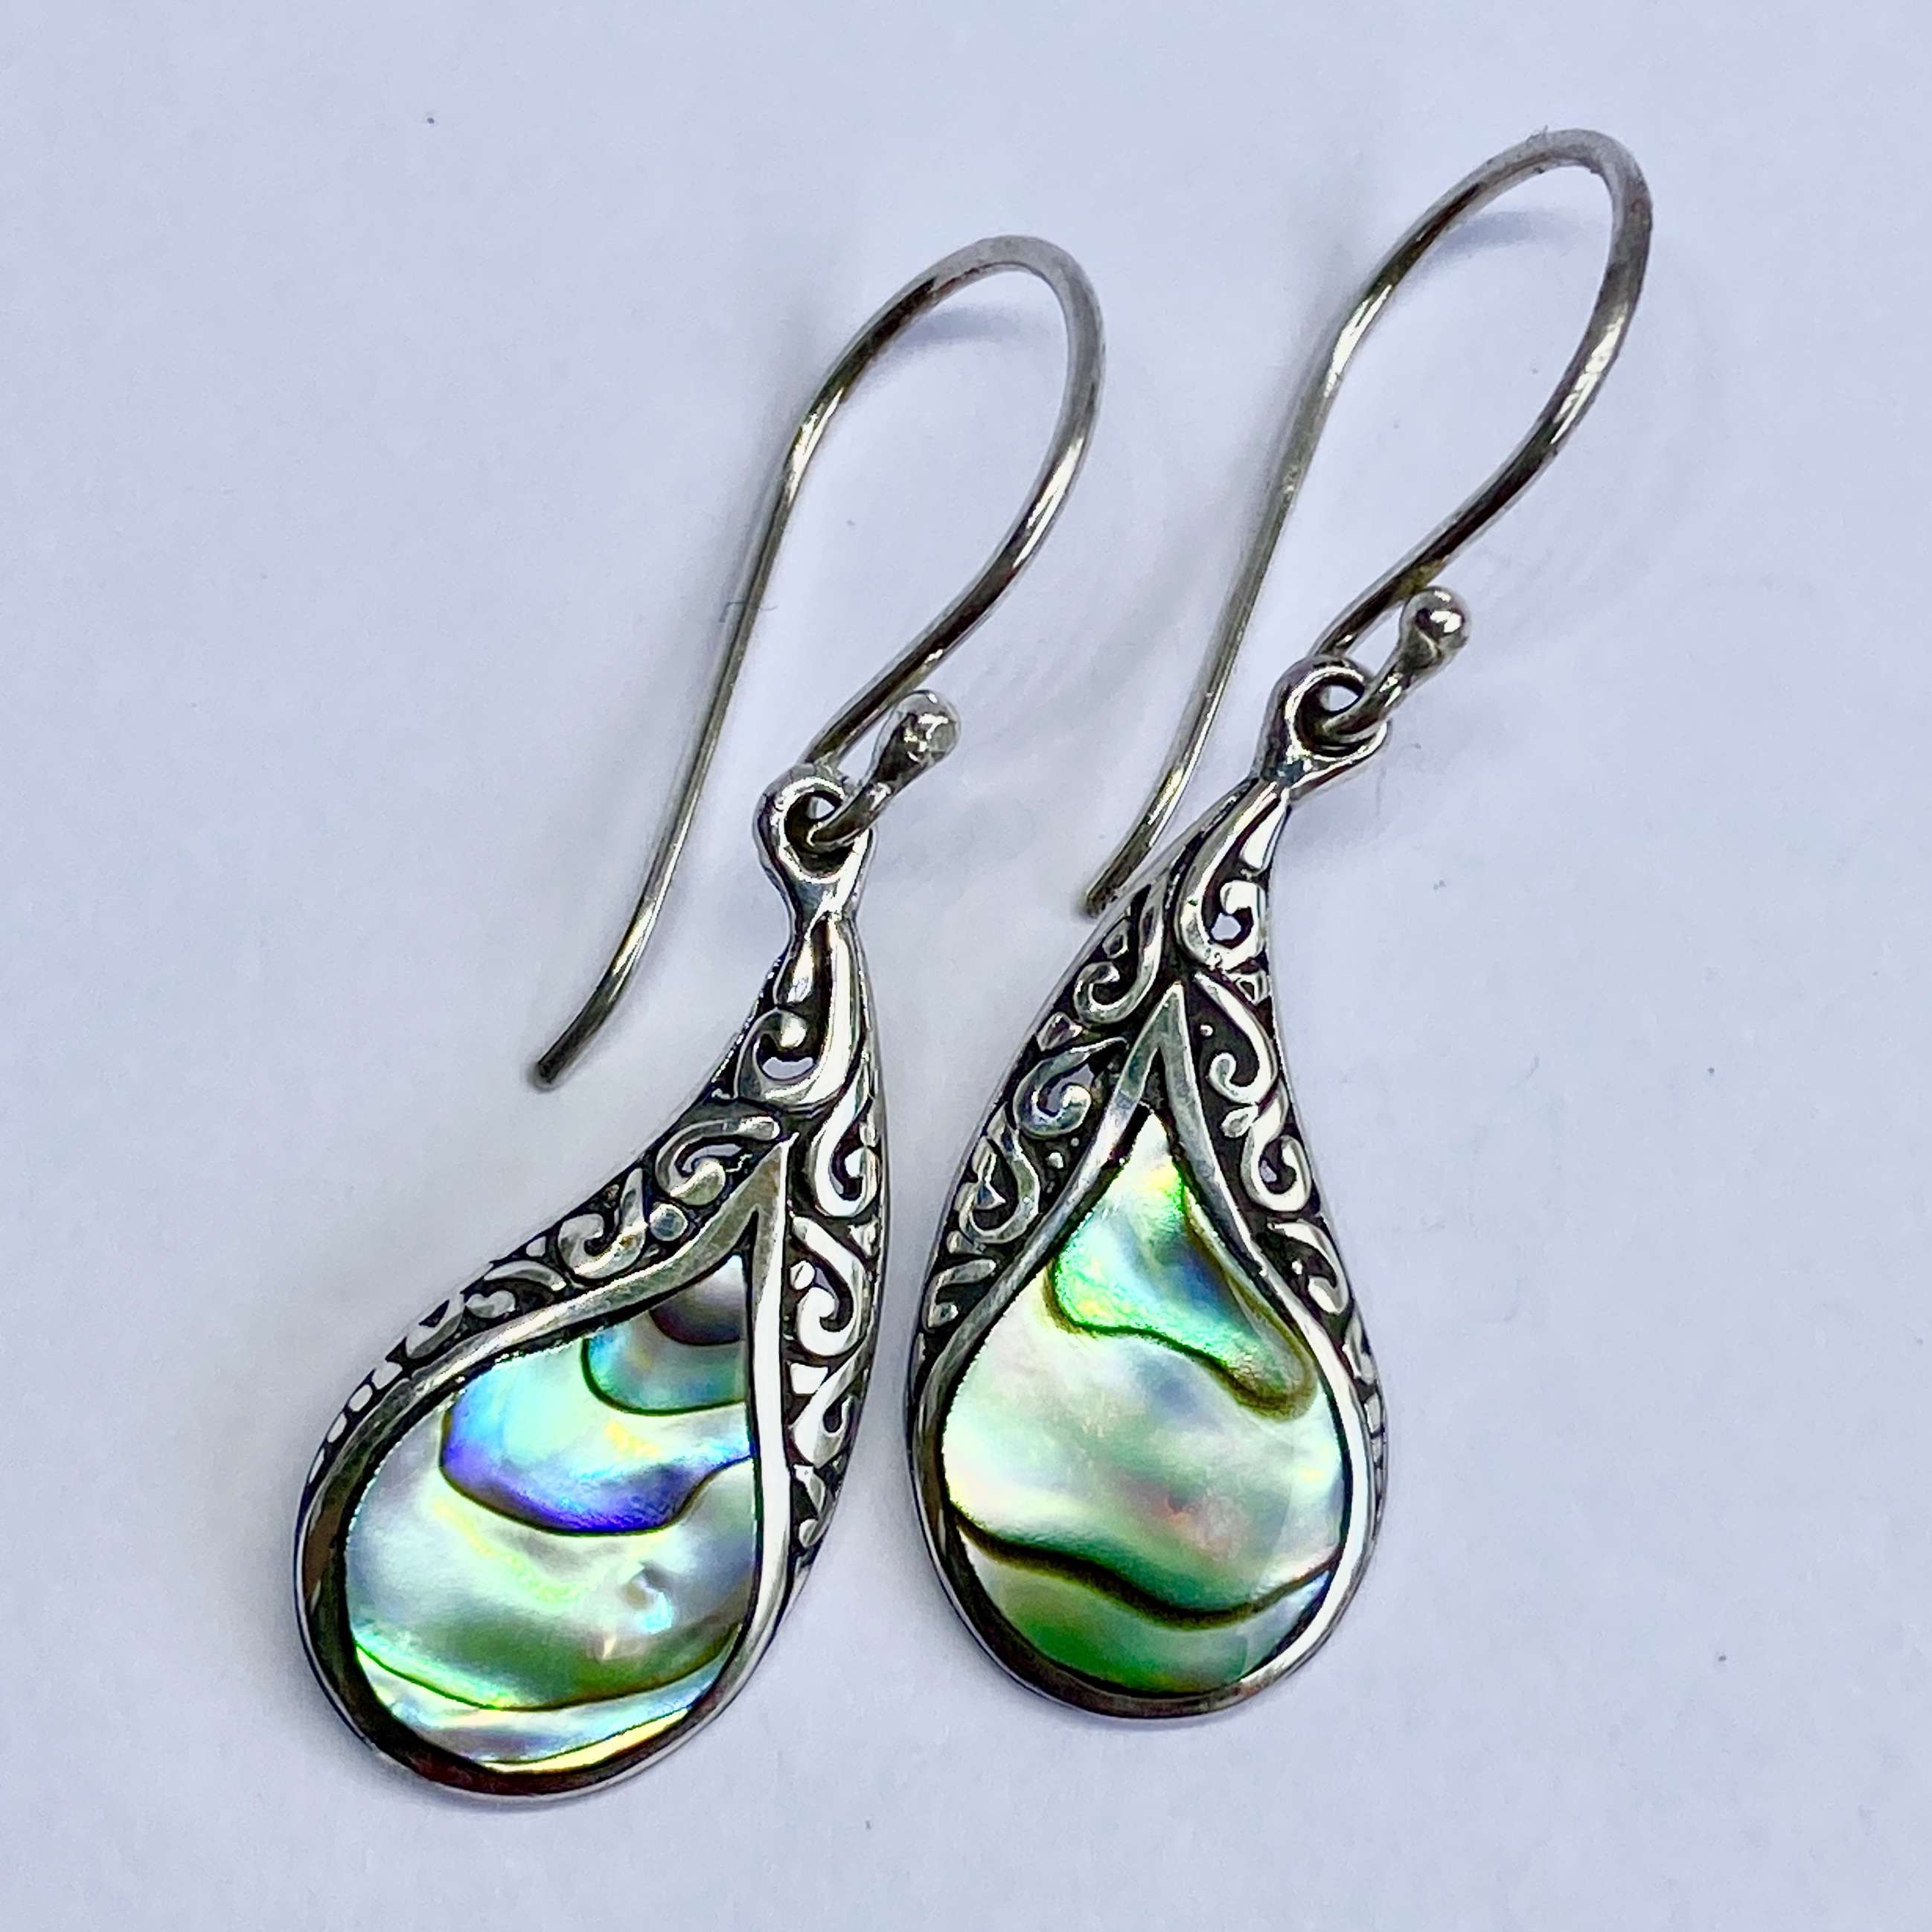 (BALI 925 STERLING SILVER EARRINGS WITH ABALONE)